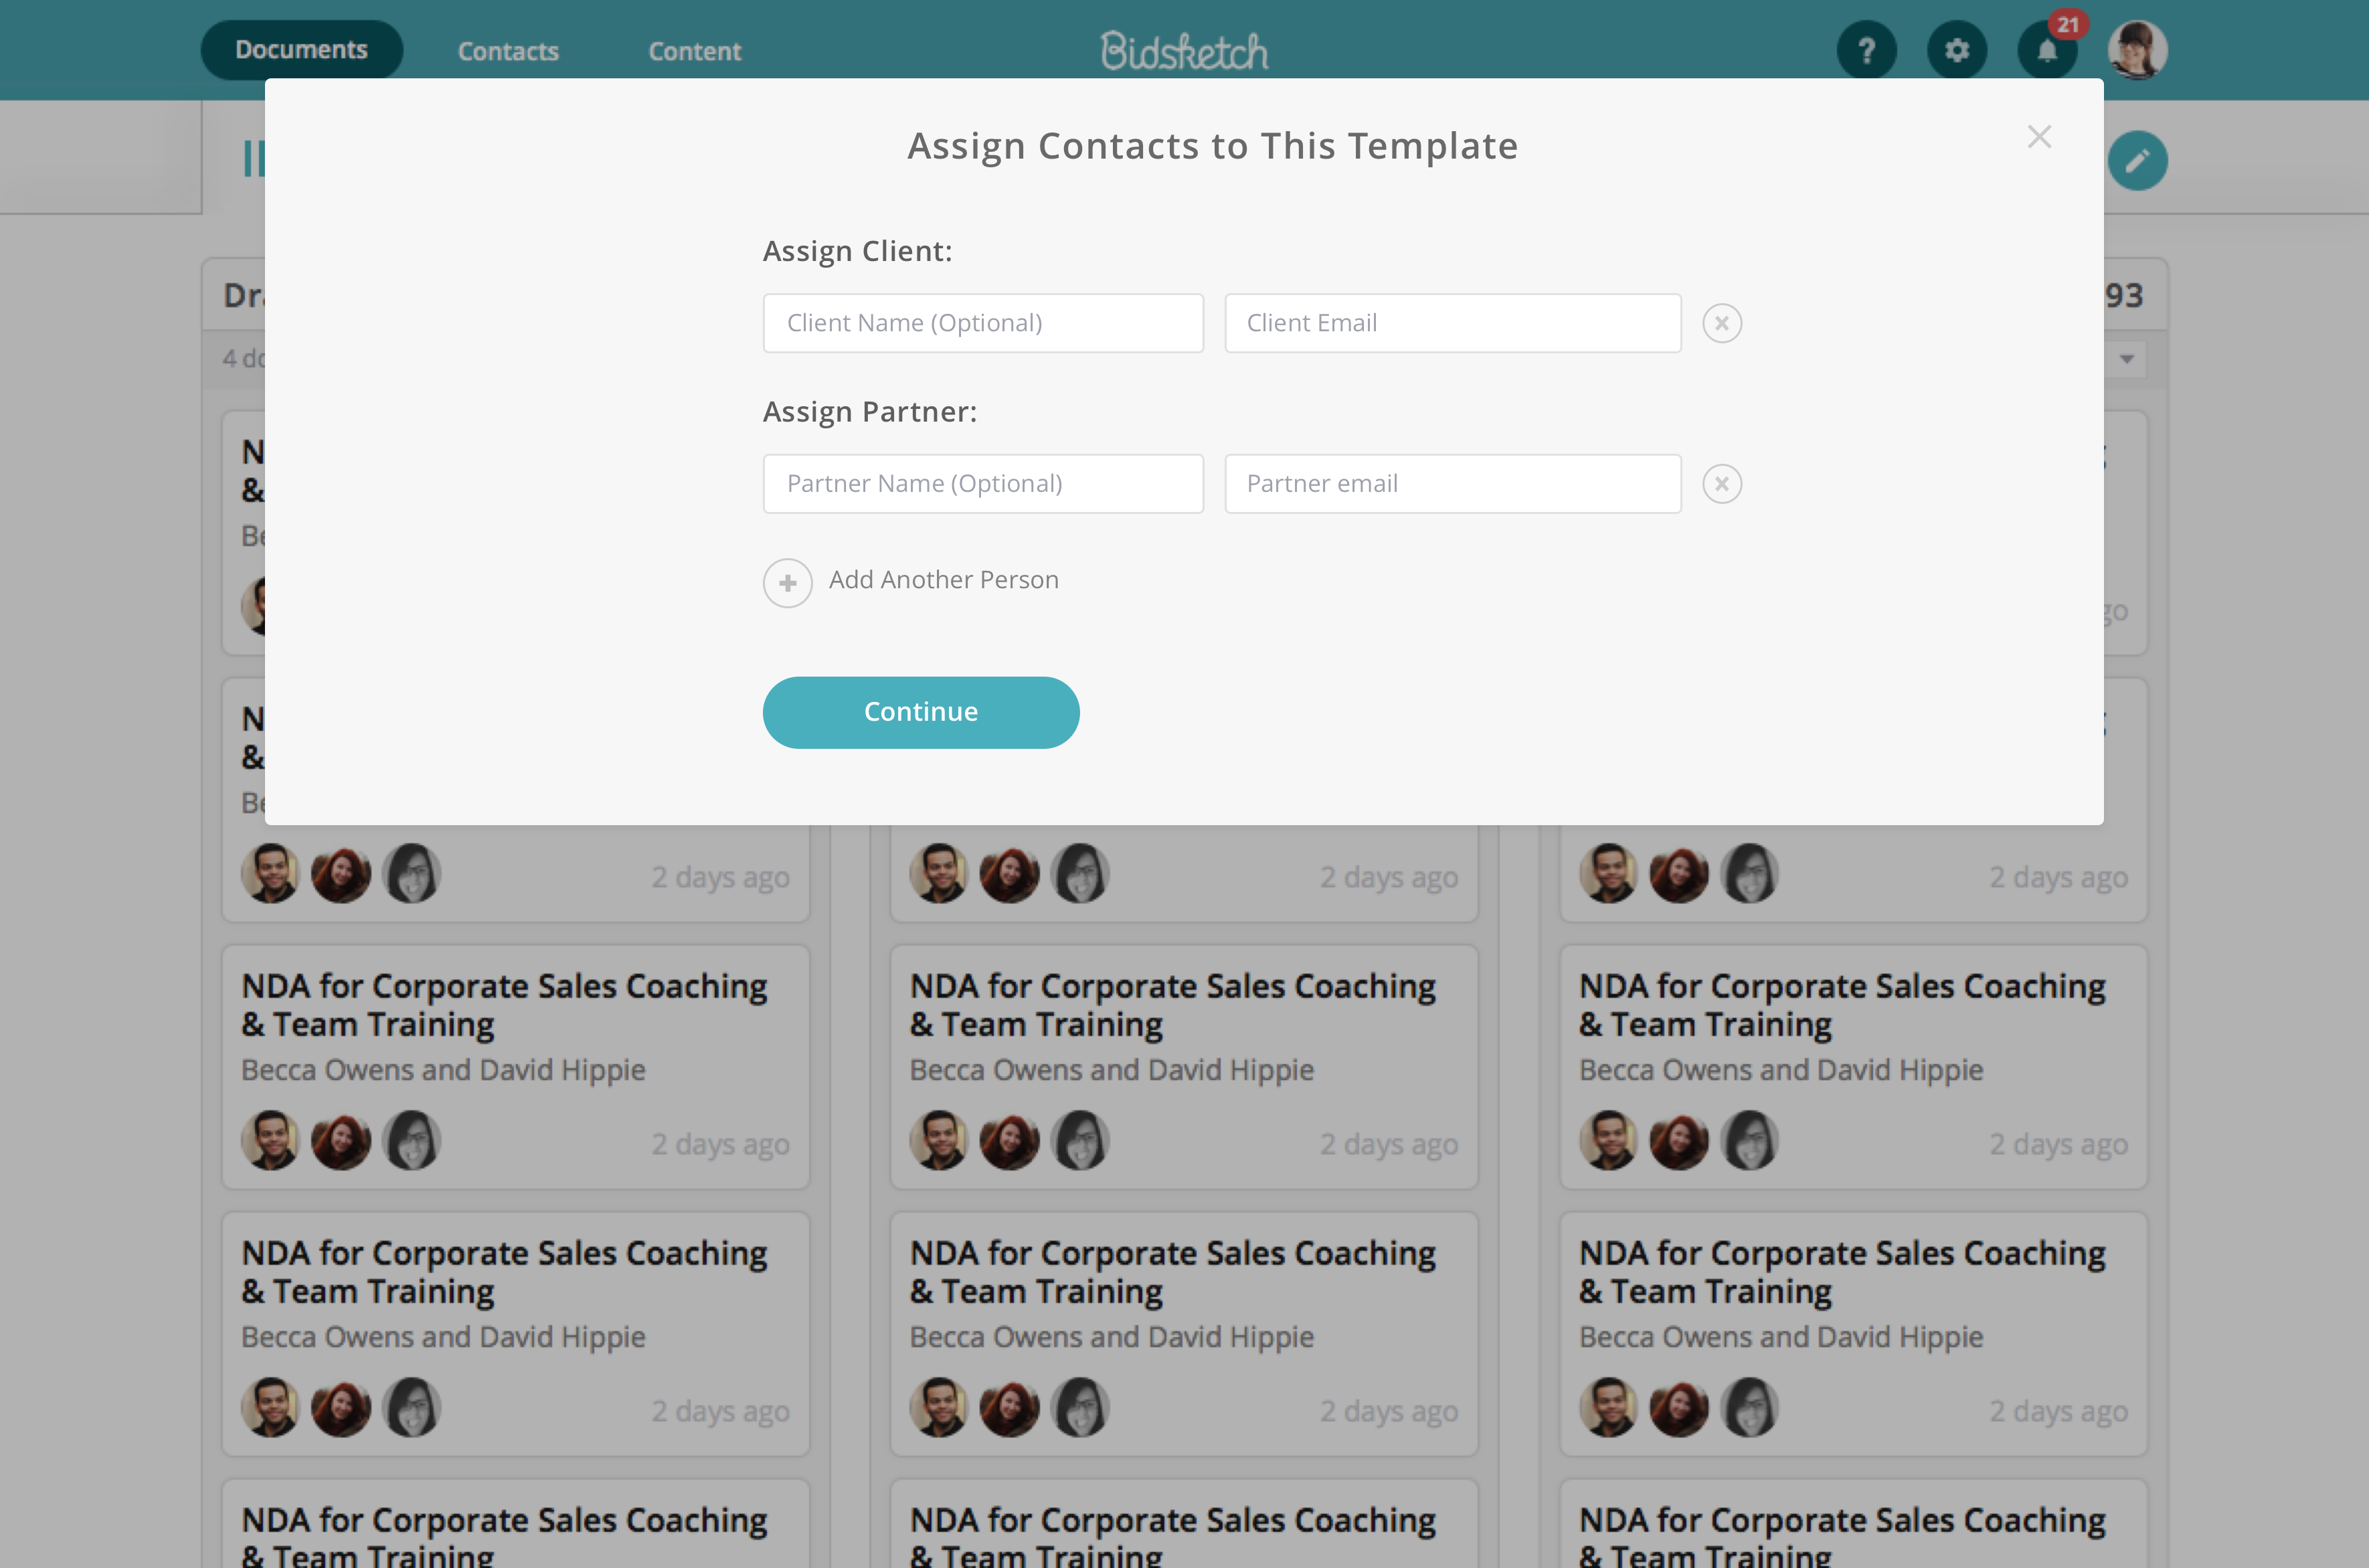 Assign contacts to templates